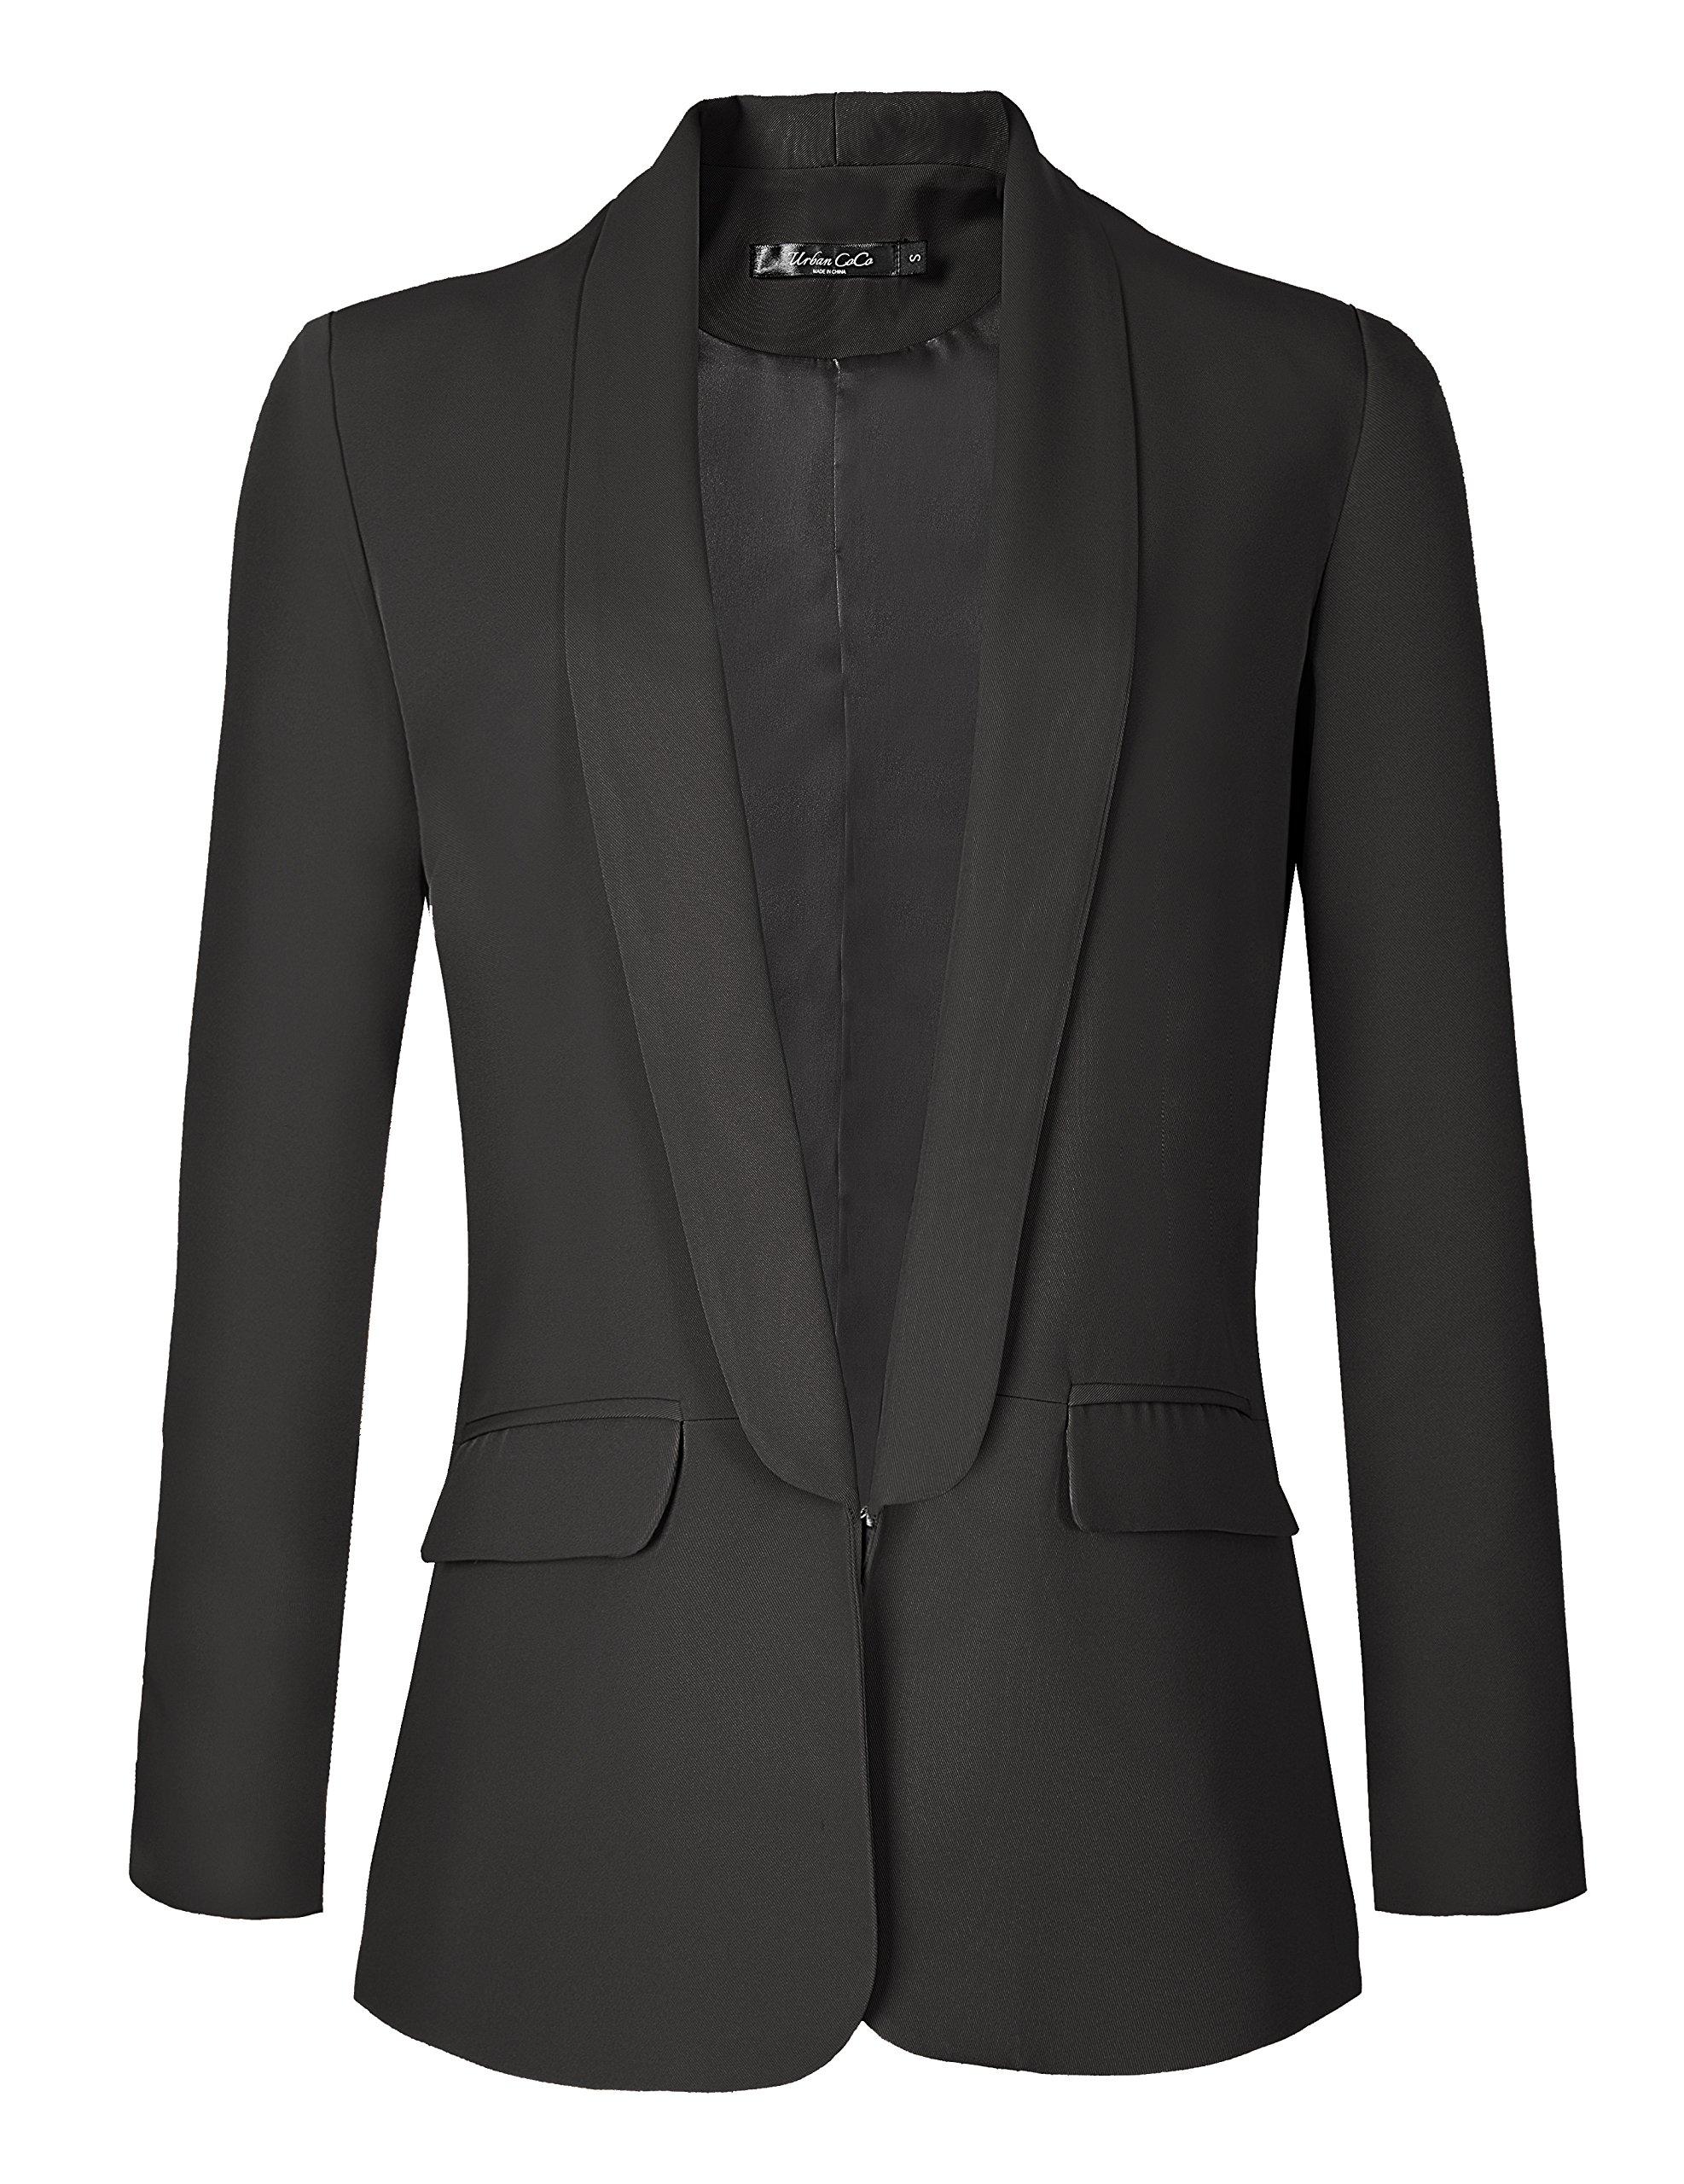 Urban CoCo Women's Office Blazer Jacket Open Front (2XL, Black)